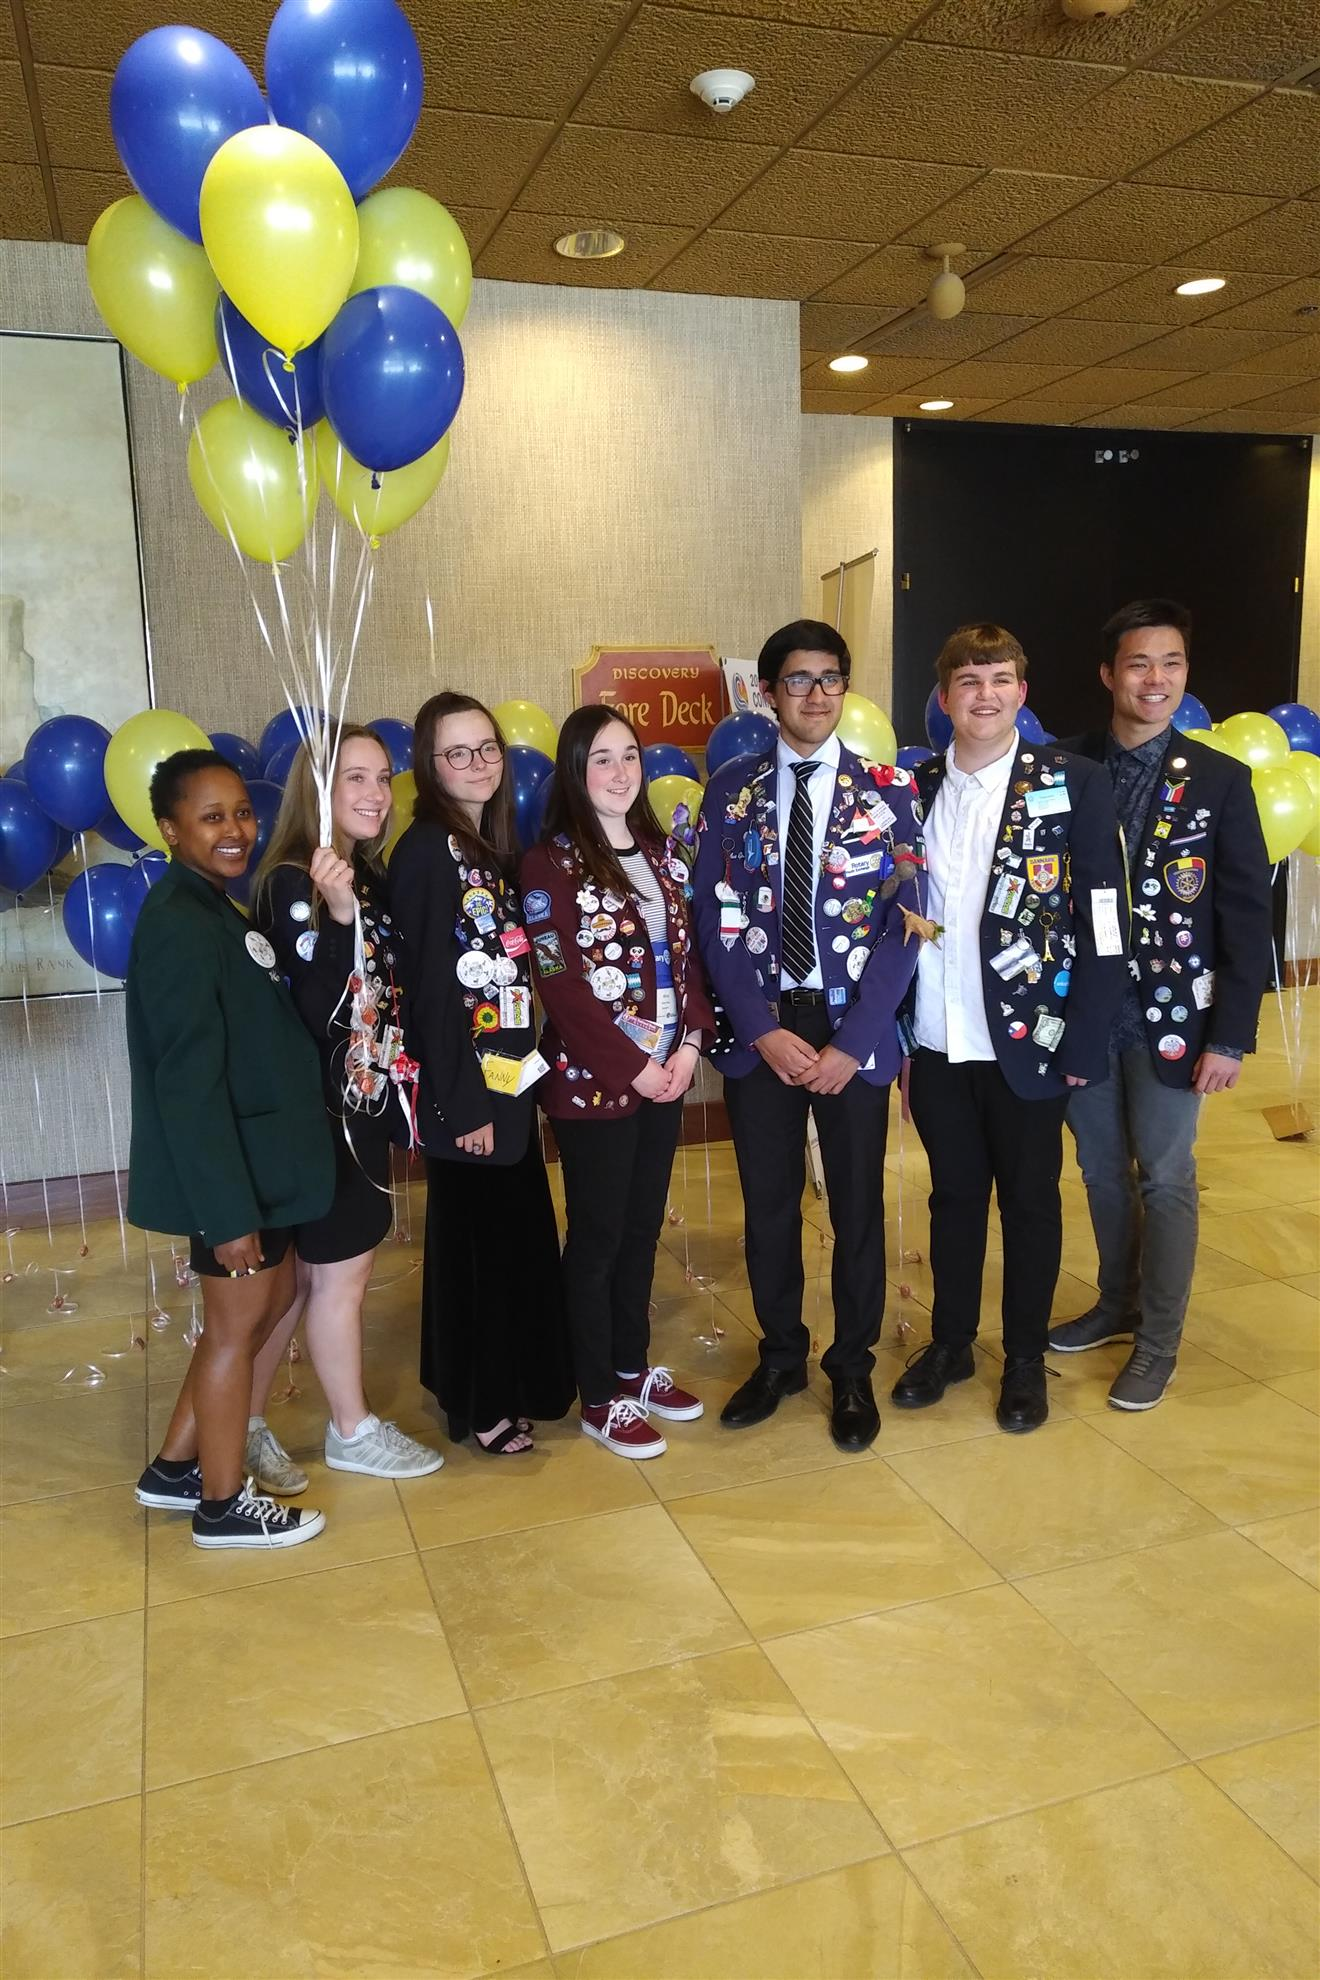 bd67badd Always one of the best parts of the Rotary District Convention is meeting  and getting to know some of the great inbound exchange students.